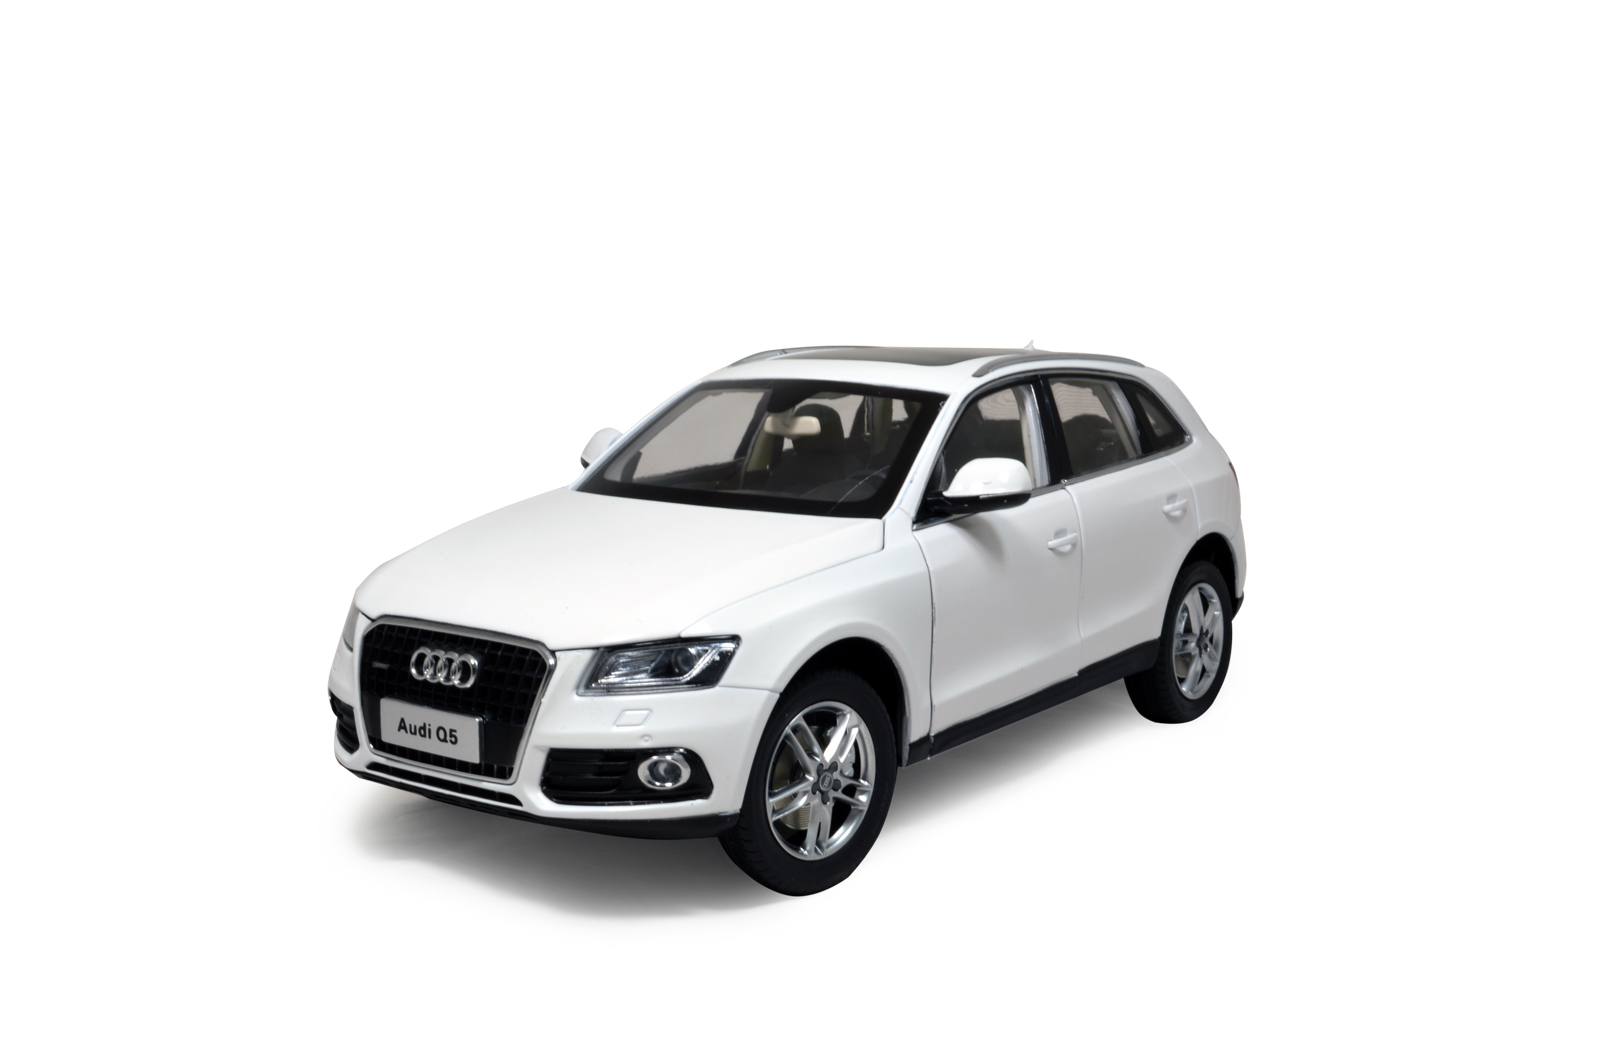 Audi Q5 2014 1 18 Scale Diecast Model Car Wholesale